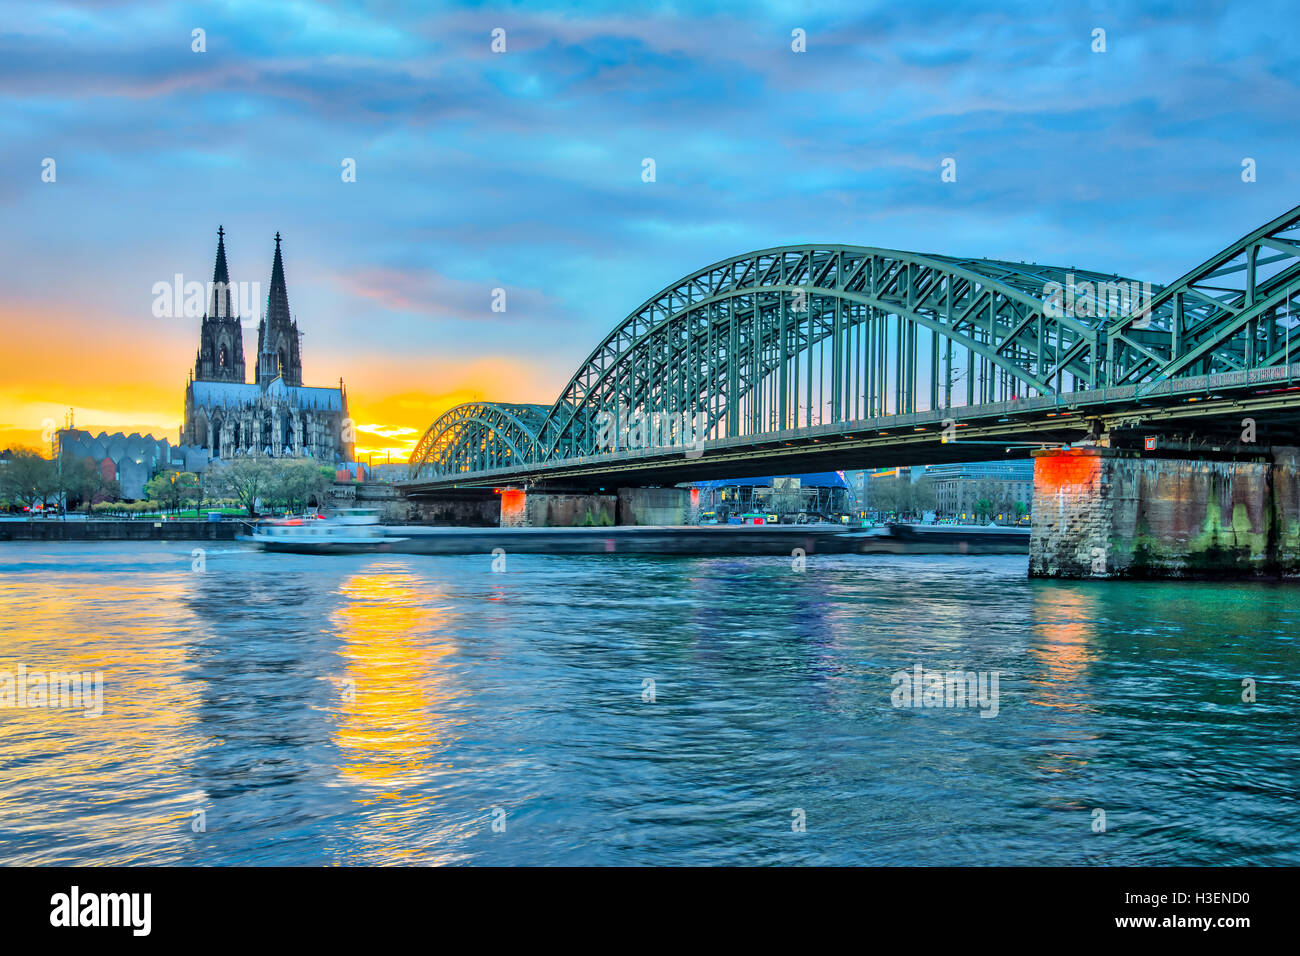 Sunset view of Cologne Cathedral in Cologne, Germany. - Stock Image